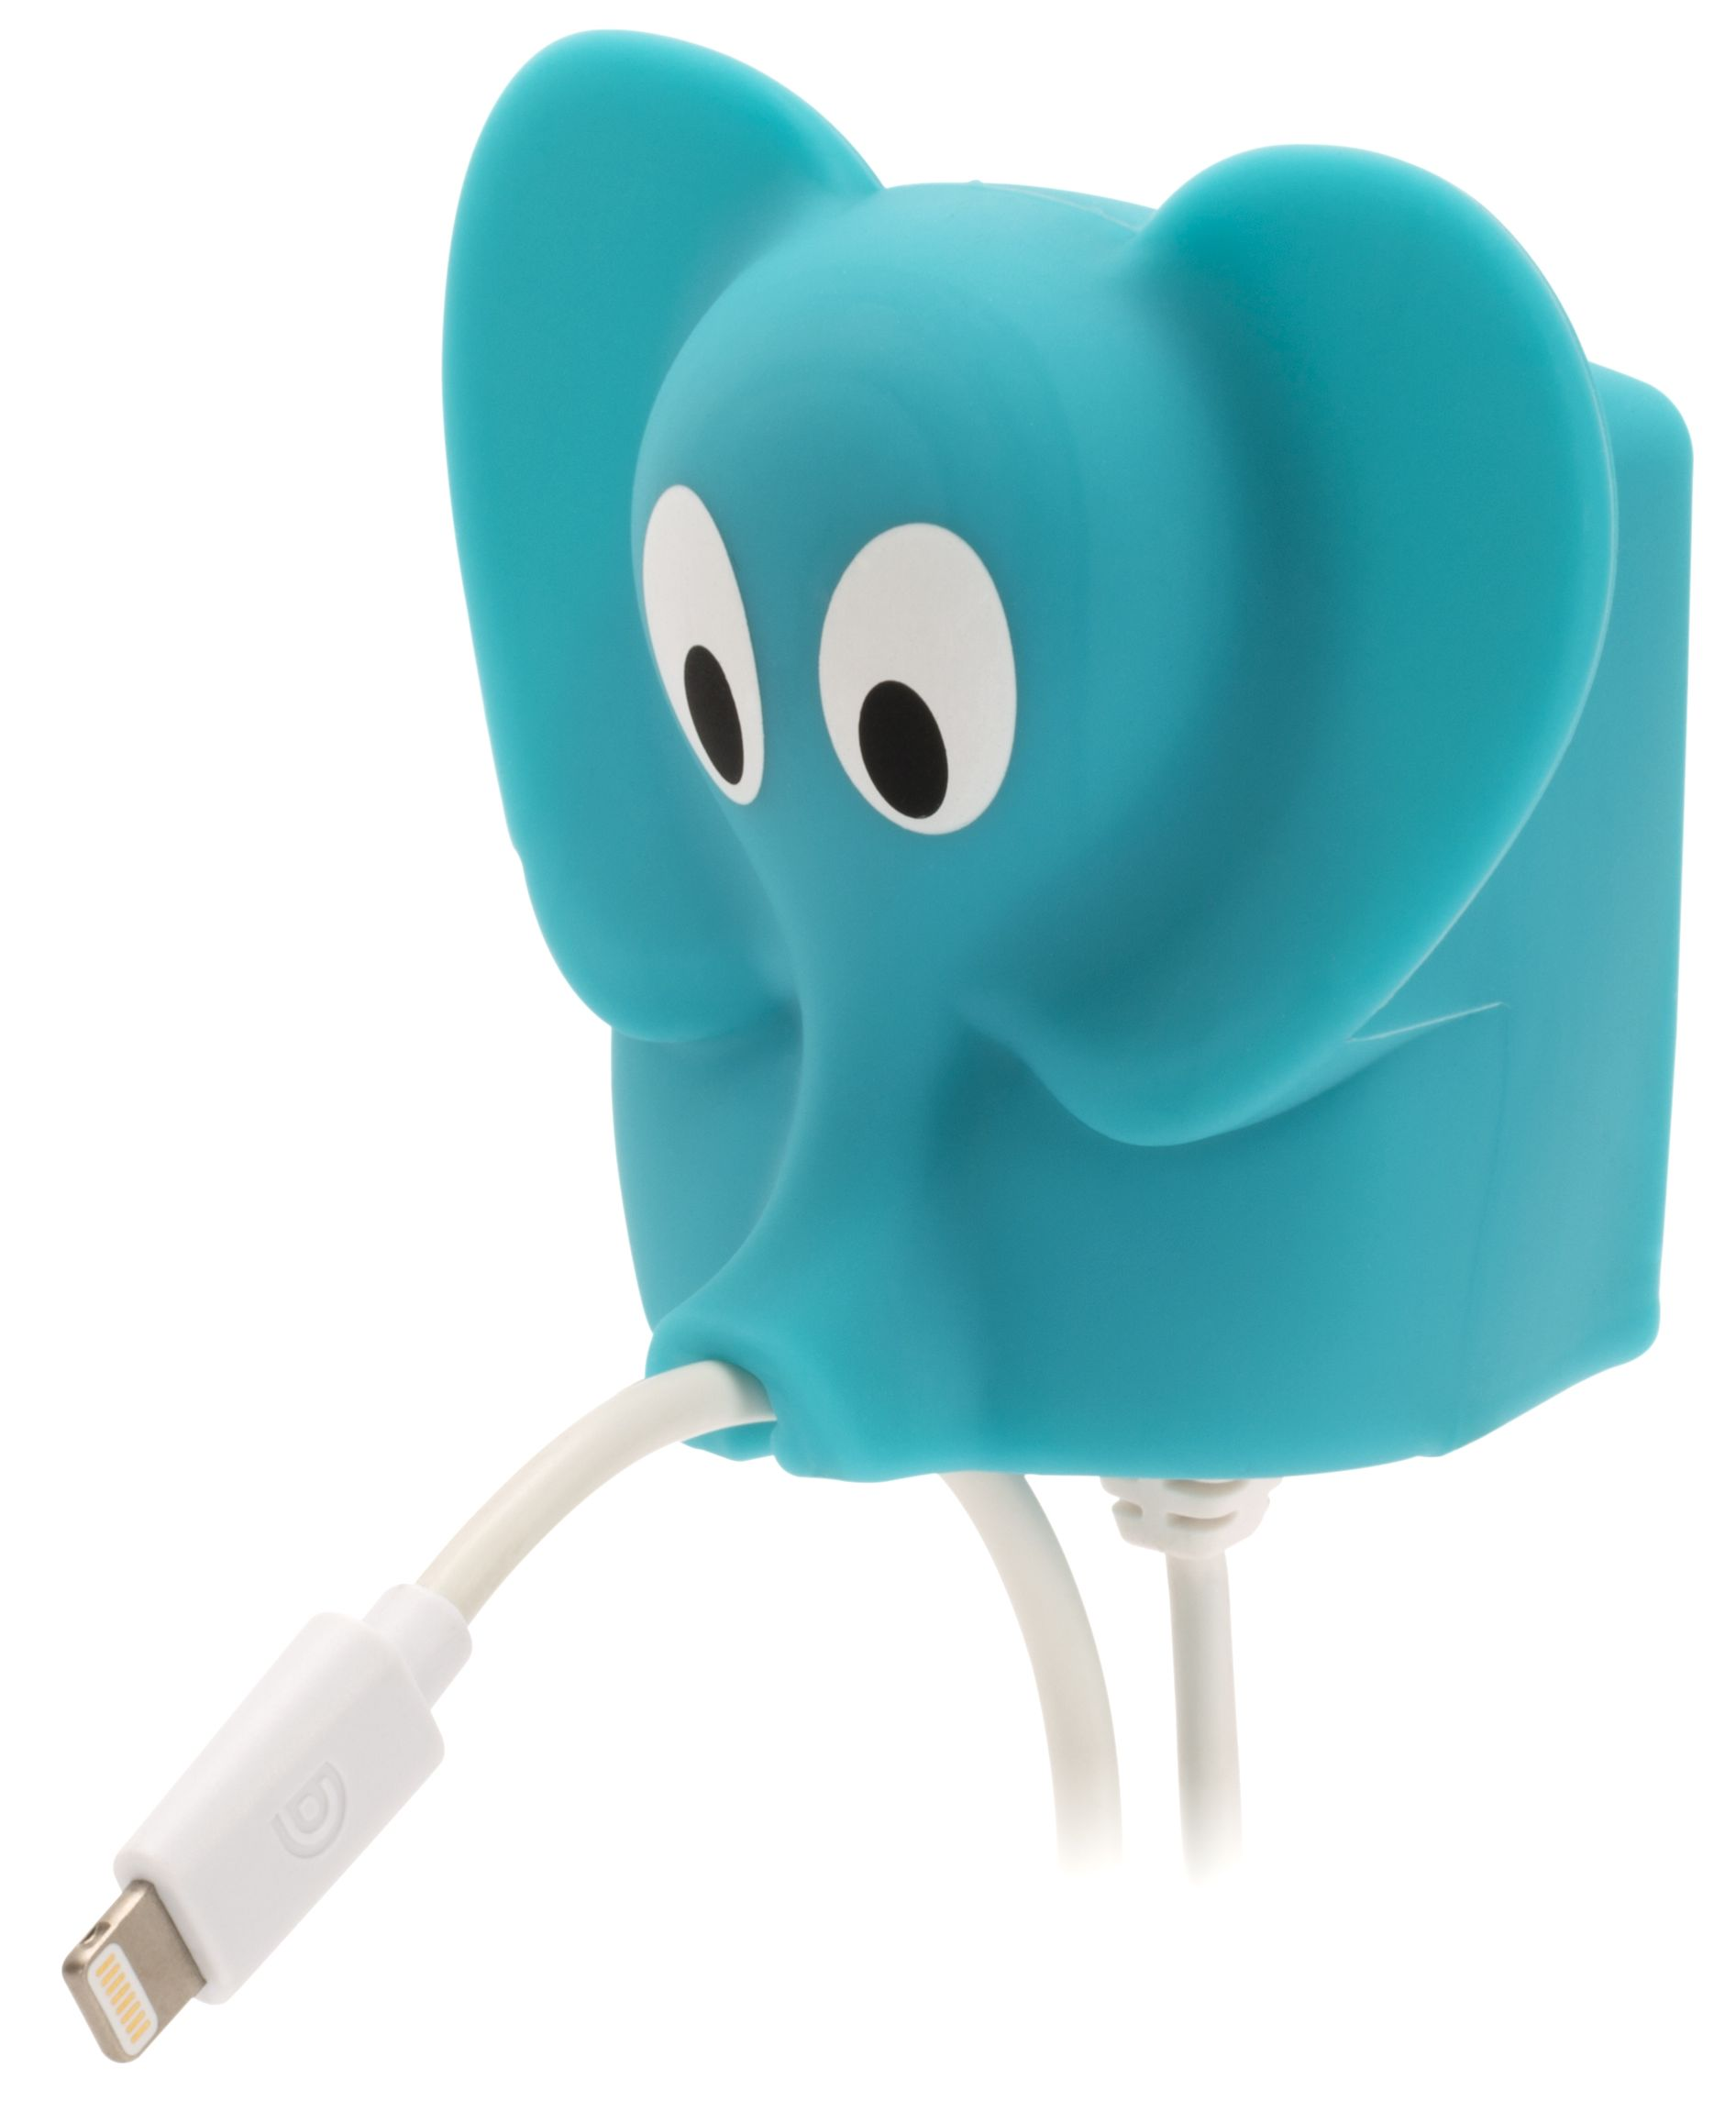 Griffin KaZoo Wall Charger (image 001)